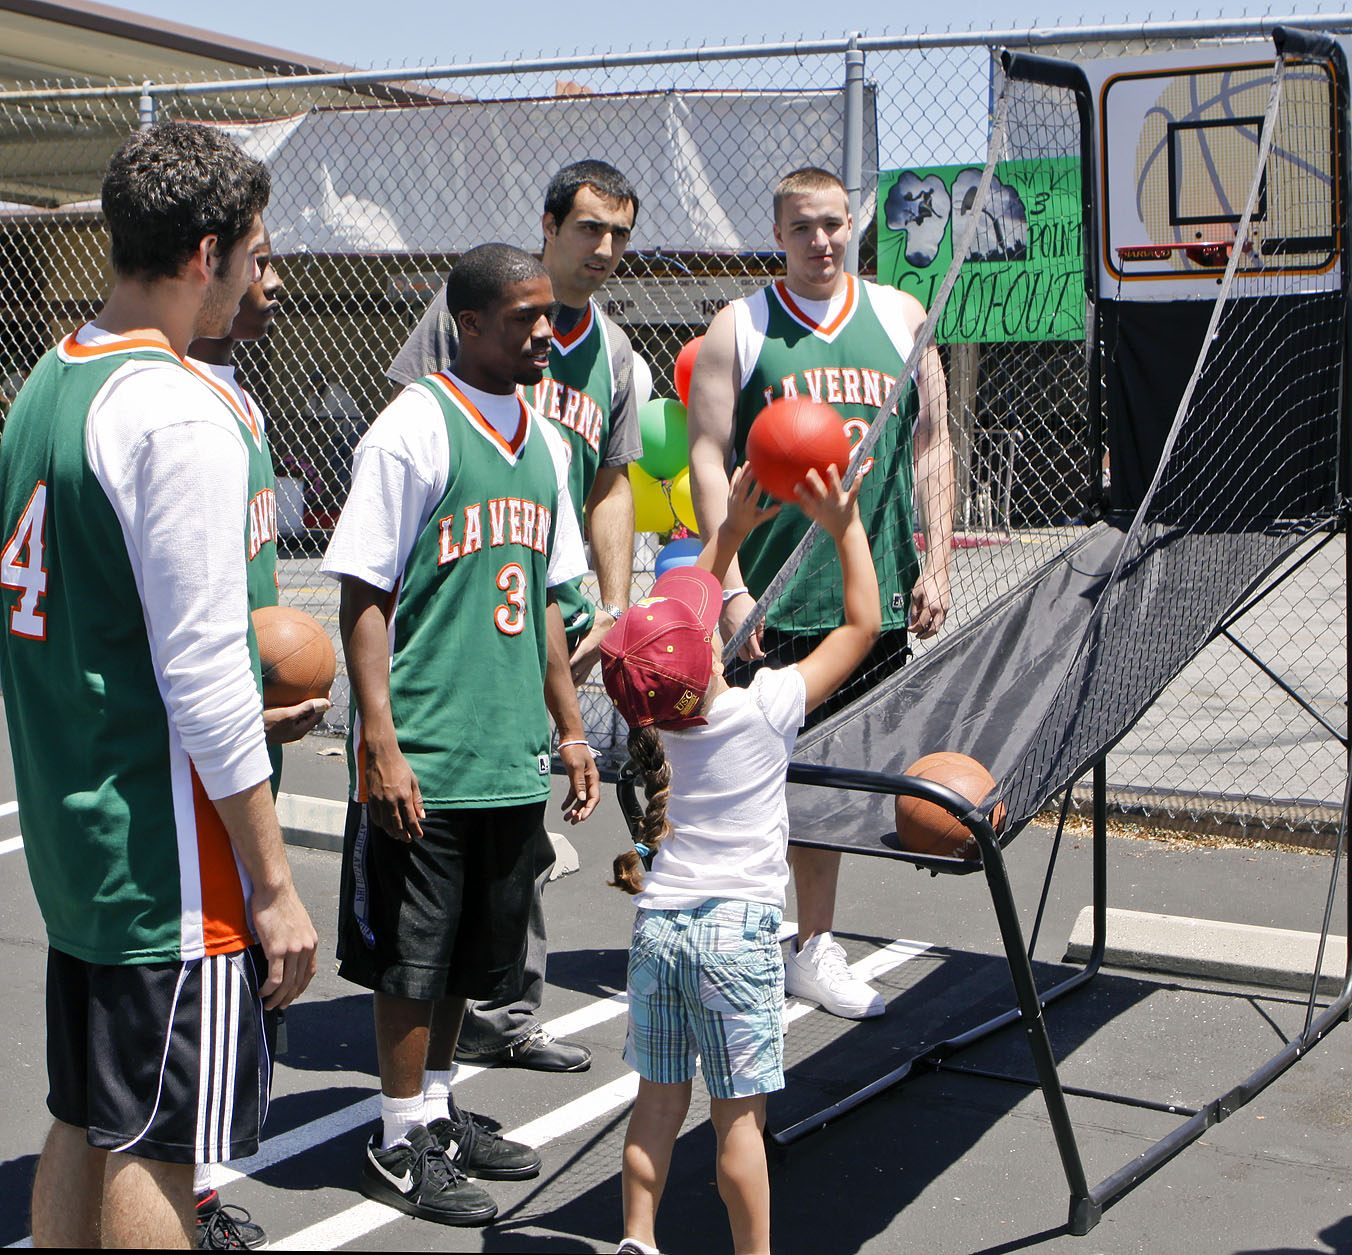 pomona valley workshop anthesis autism services The athletes worked with autistic adults and supported the efforts of pomona valley workshop to provide services for adults with developmental disabilities with a 400 percent increase in autism in california, these program are increasingly needed.